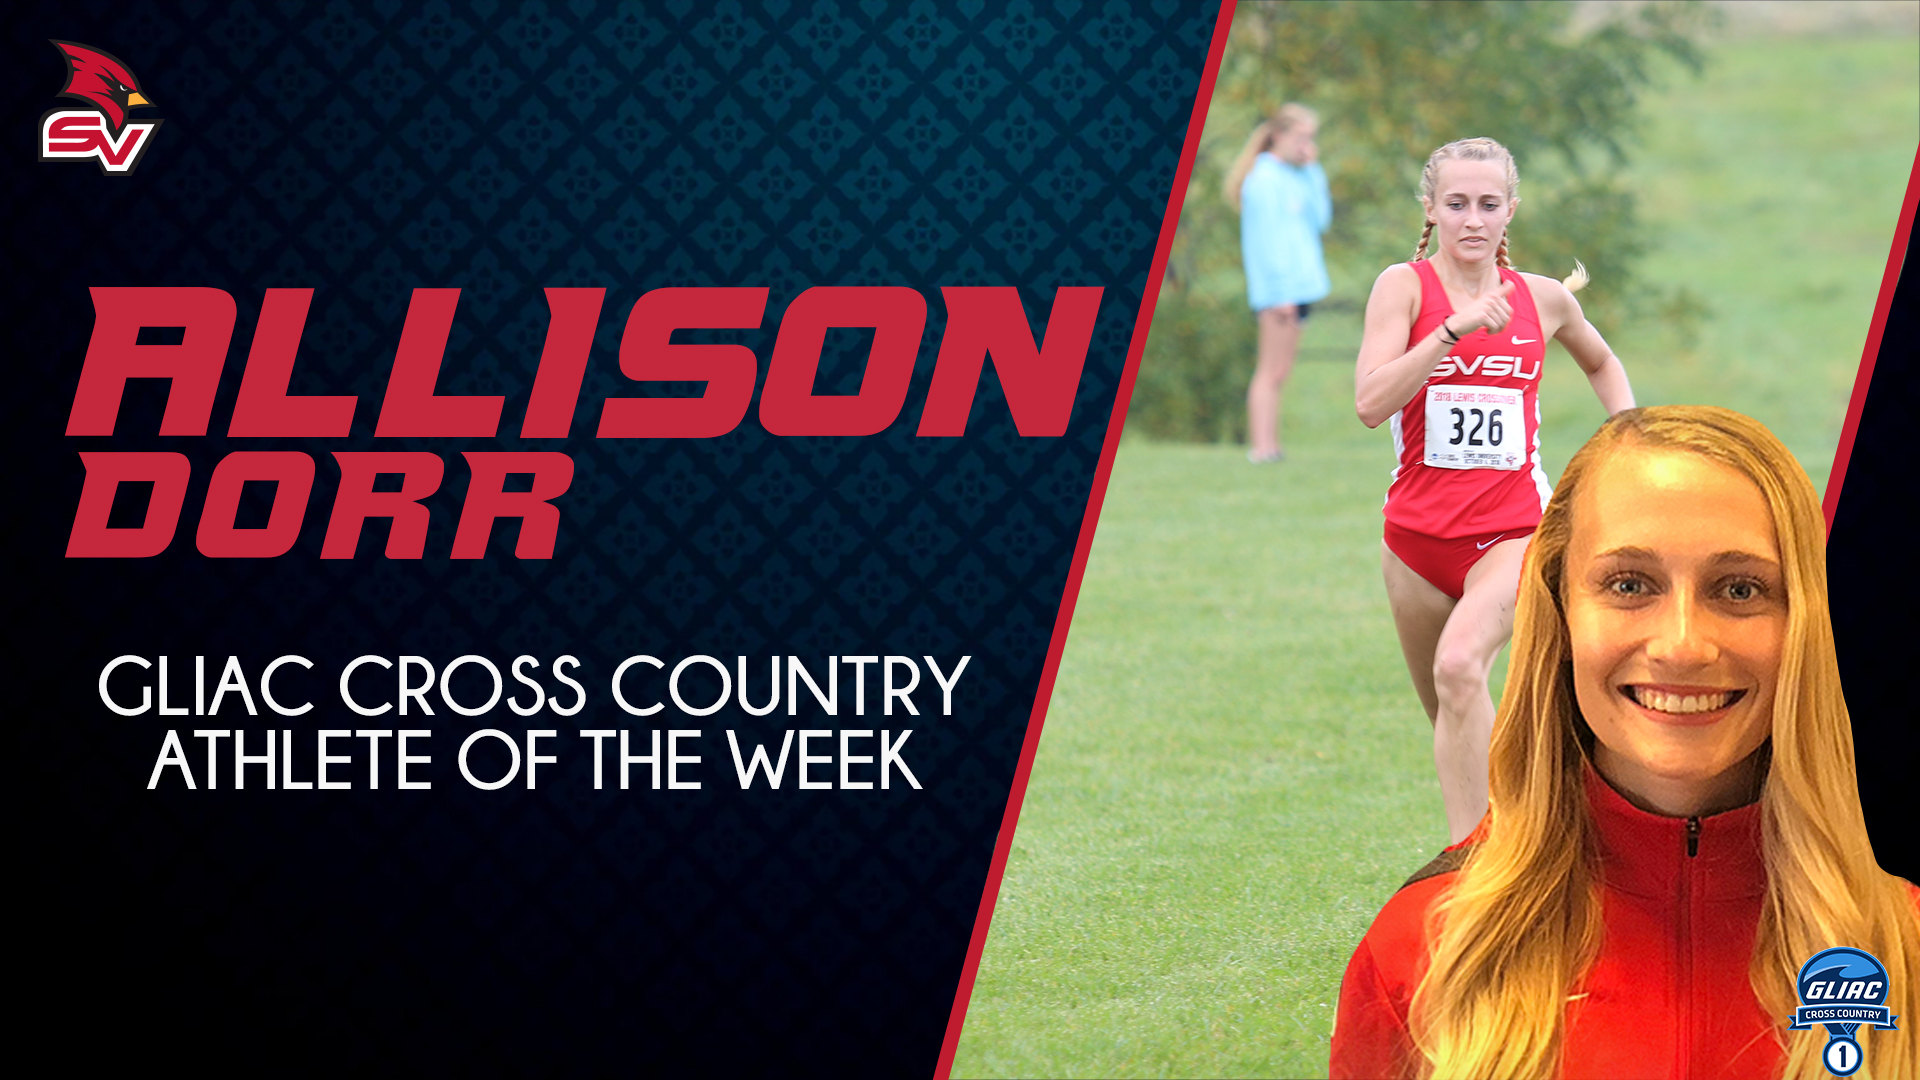 Allison Dorr Named GLIAC Cross Country Runner of the Week